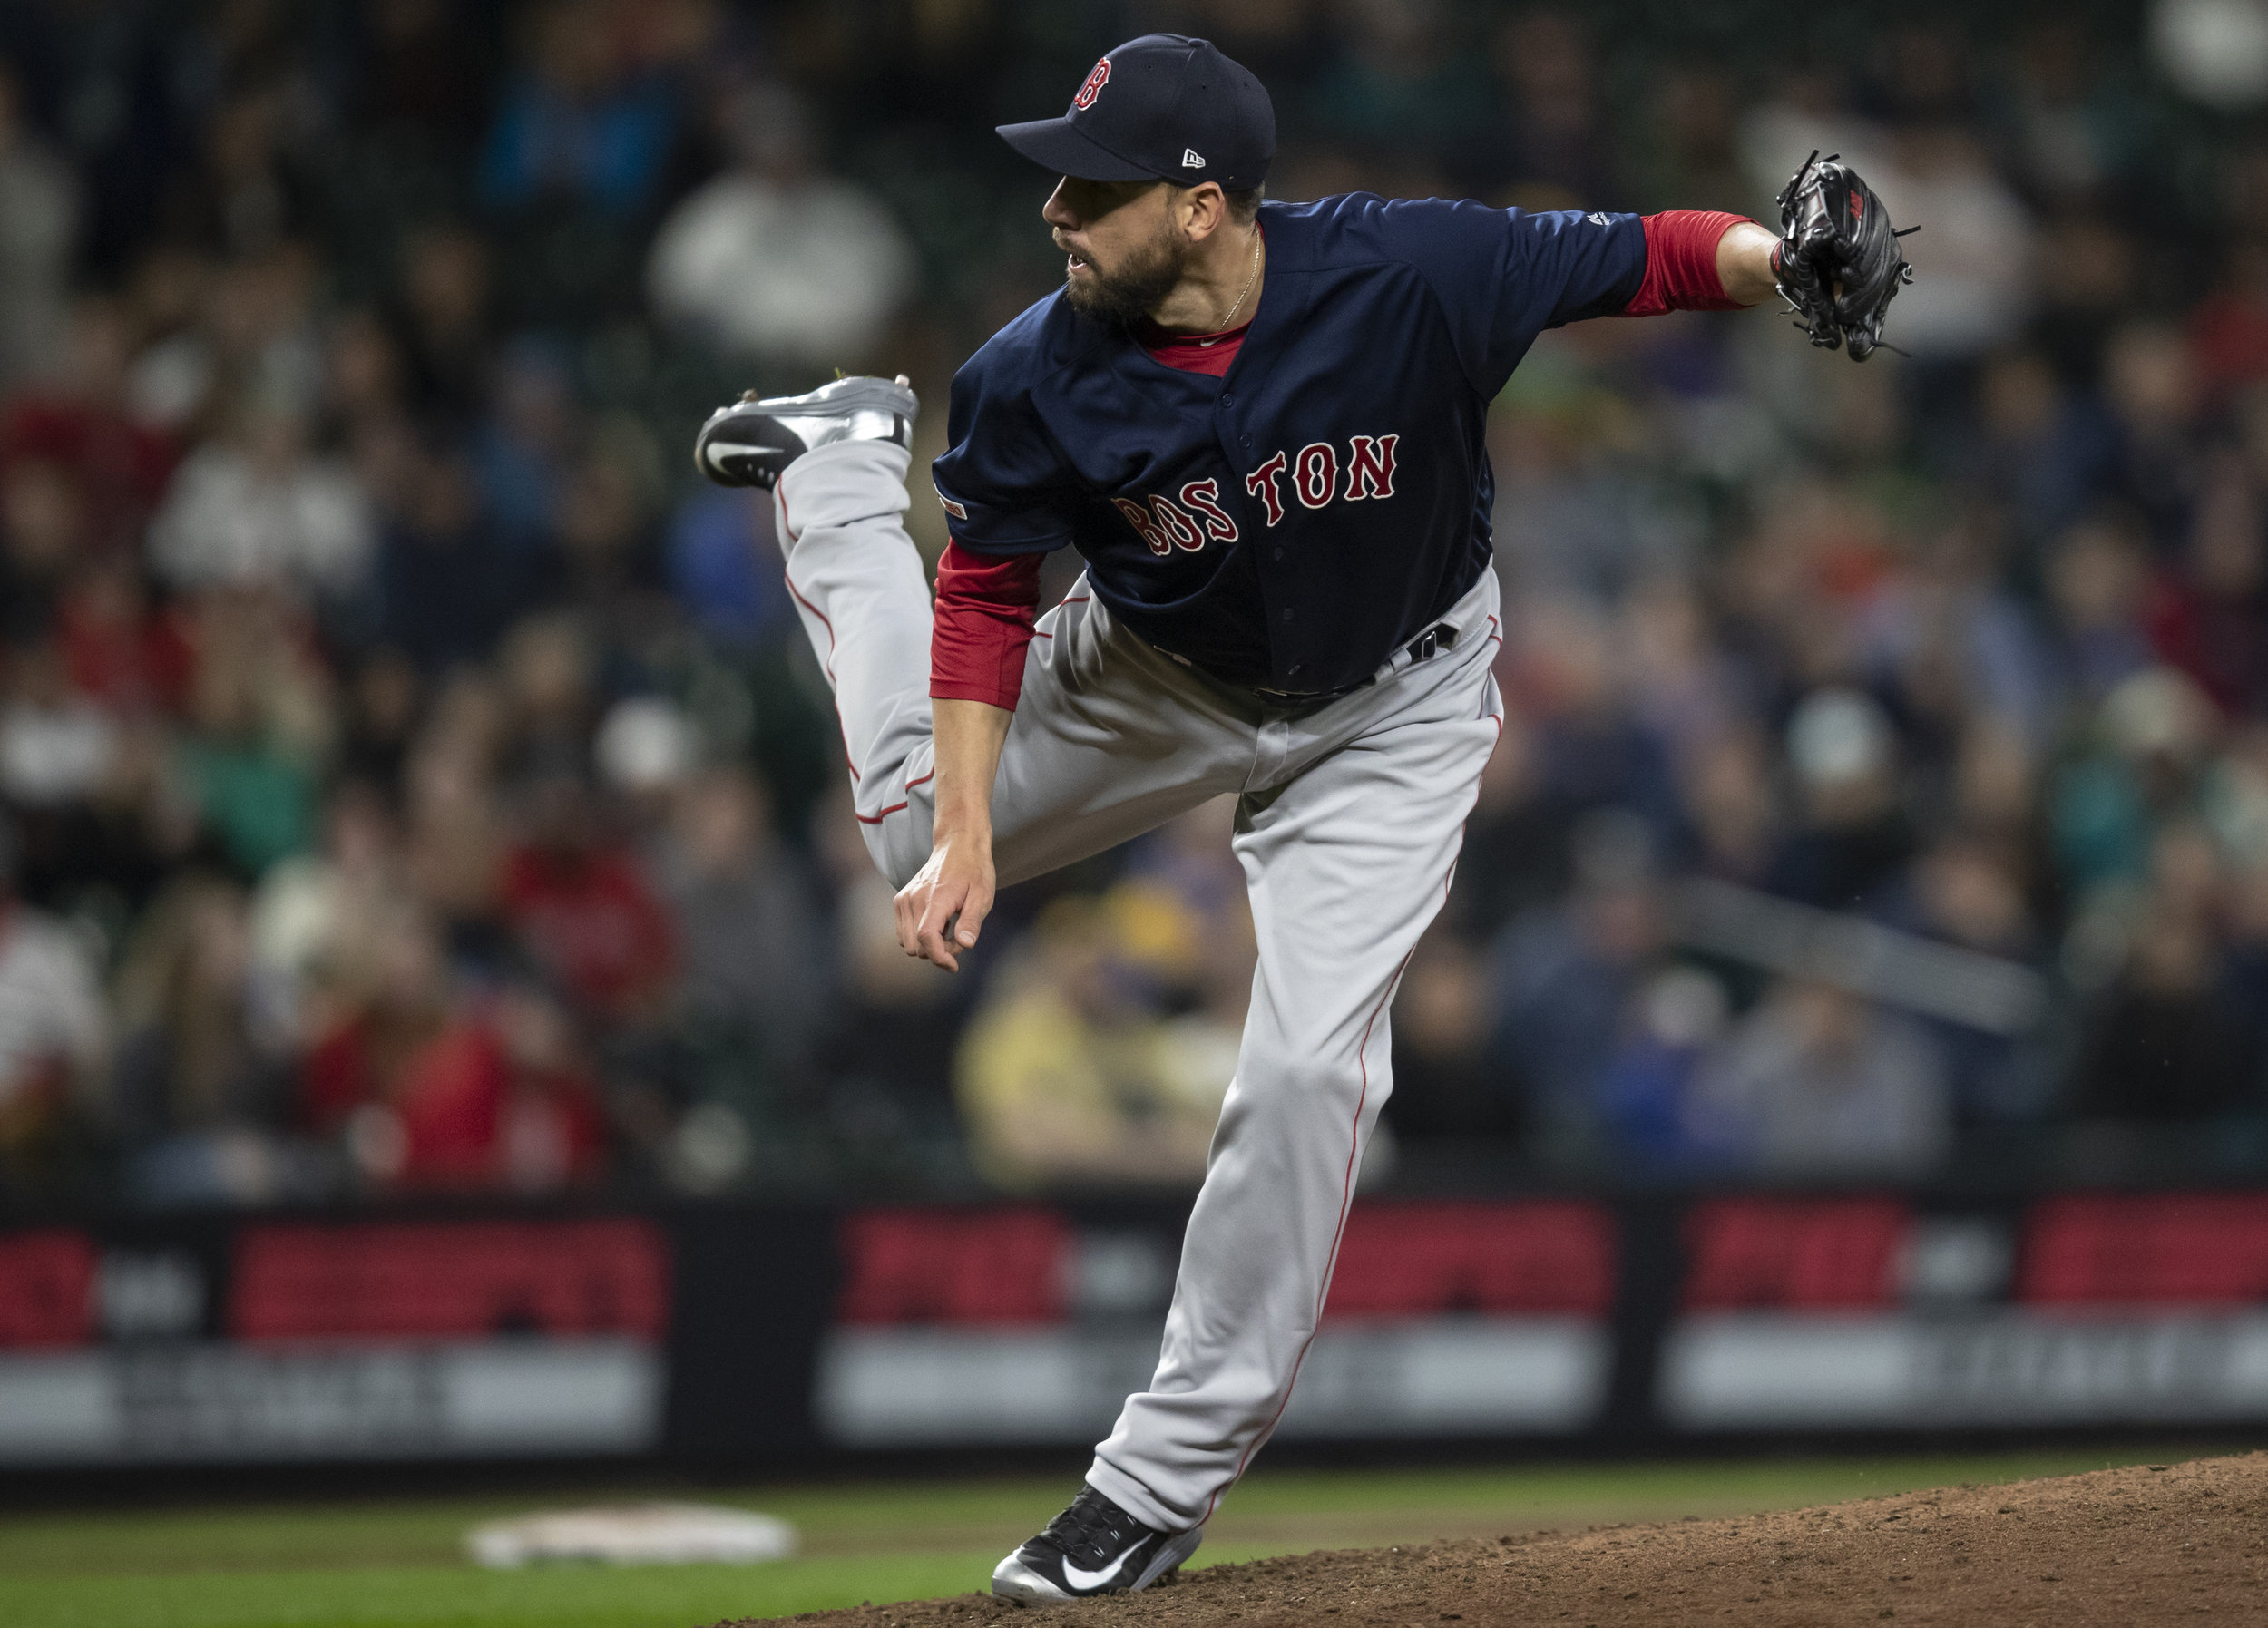 Boston Red Sox reliever Matt Barnes watches a pitch during the ninth inning of the team's baseball game against the Seattle Mariners, Friday, March 29, 2019, in Seattle. The Red Sox won 7-6. (AP Photo/Stephen Brashear)